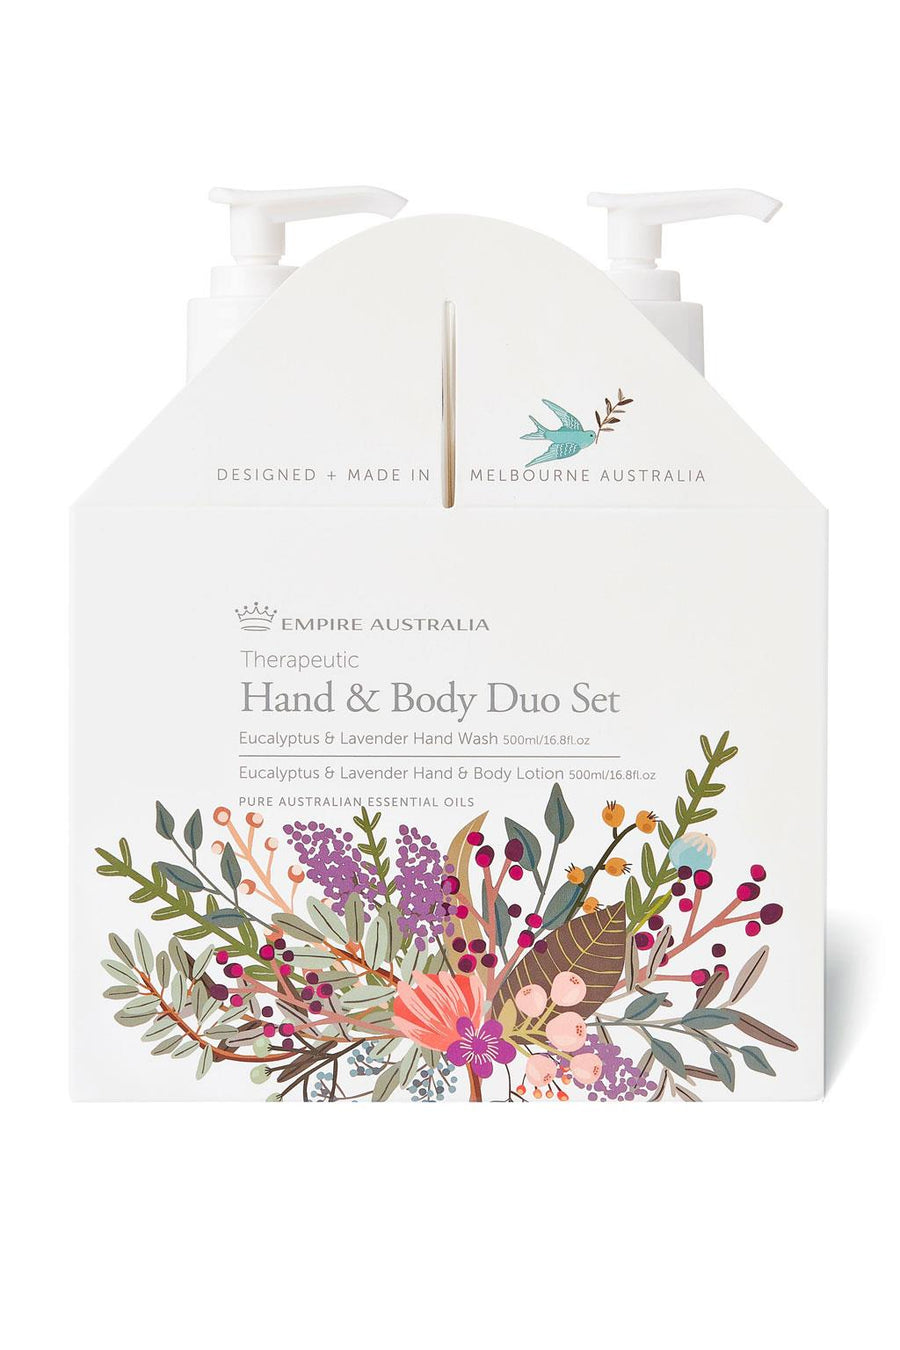 Therapeutic I Hand & Body Care Duo I Eucalyptus & Lavender - Richie and Co